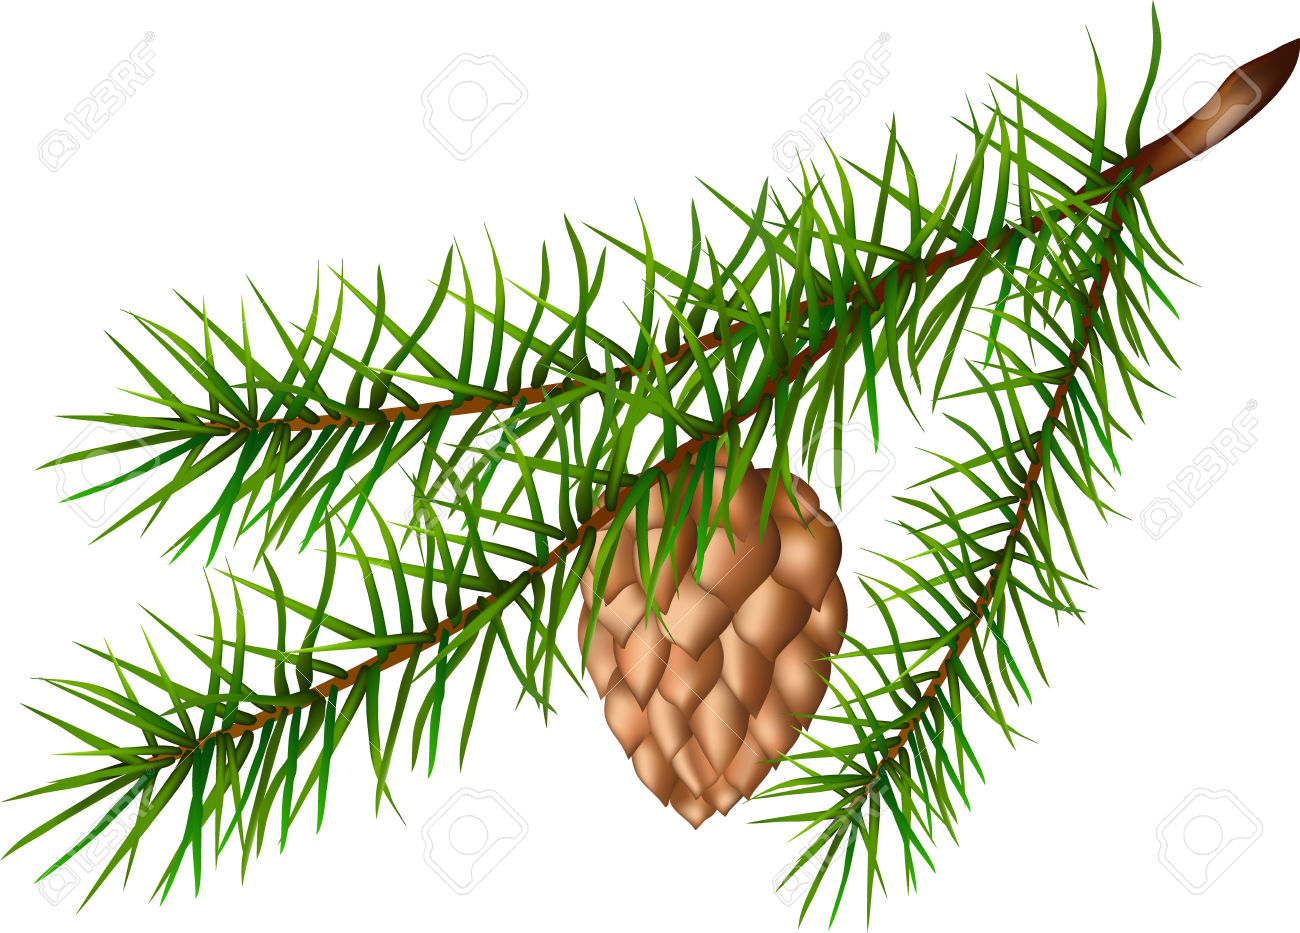 Evergreen branch clipart - Clipground Evergreen Branch